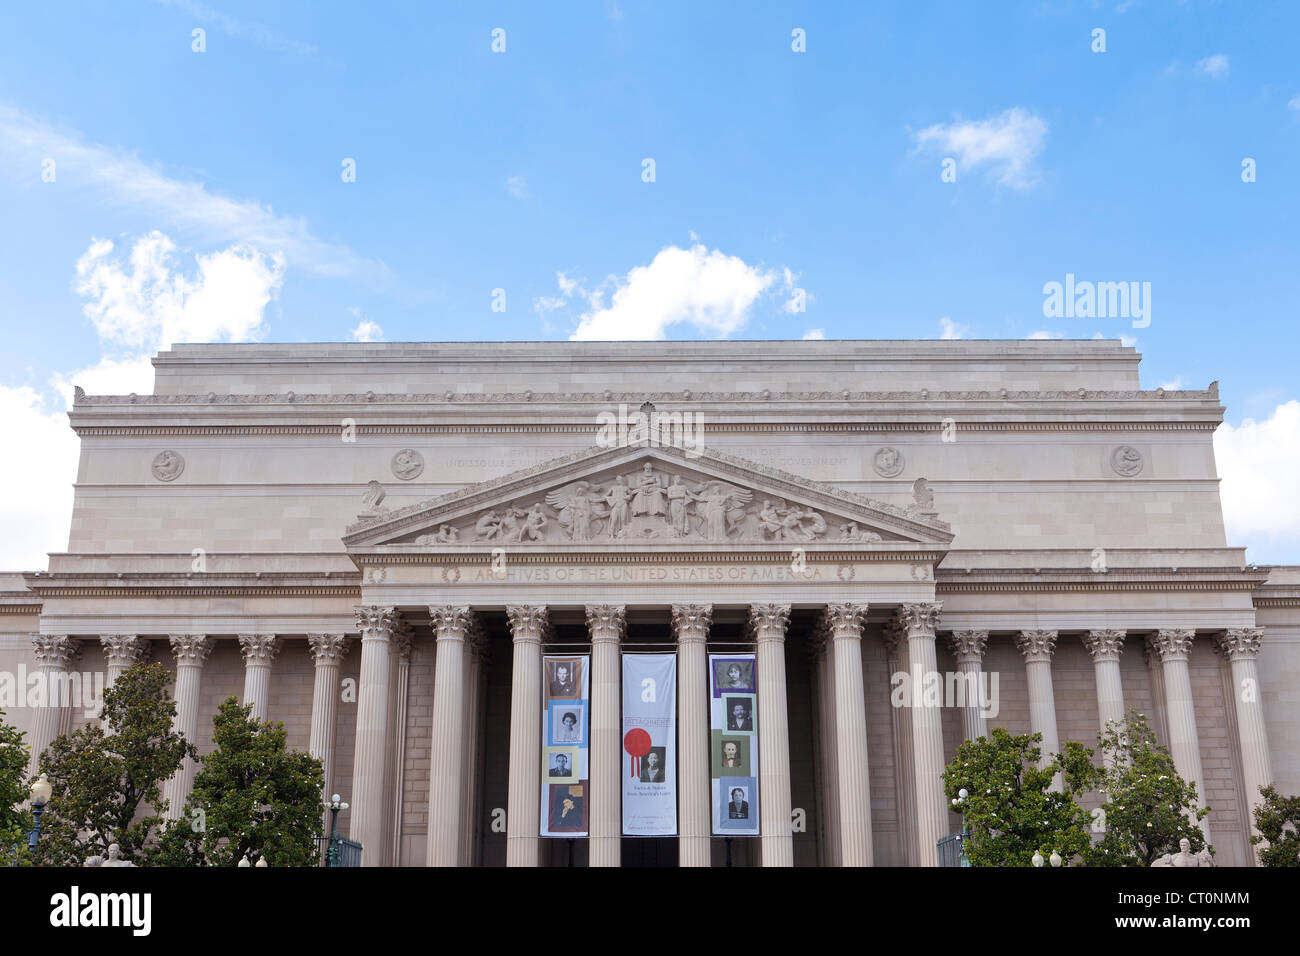 National Archives building - Stock Image